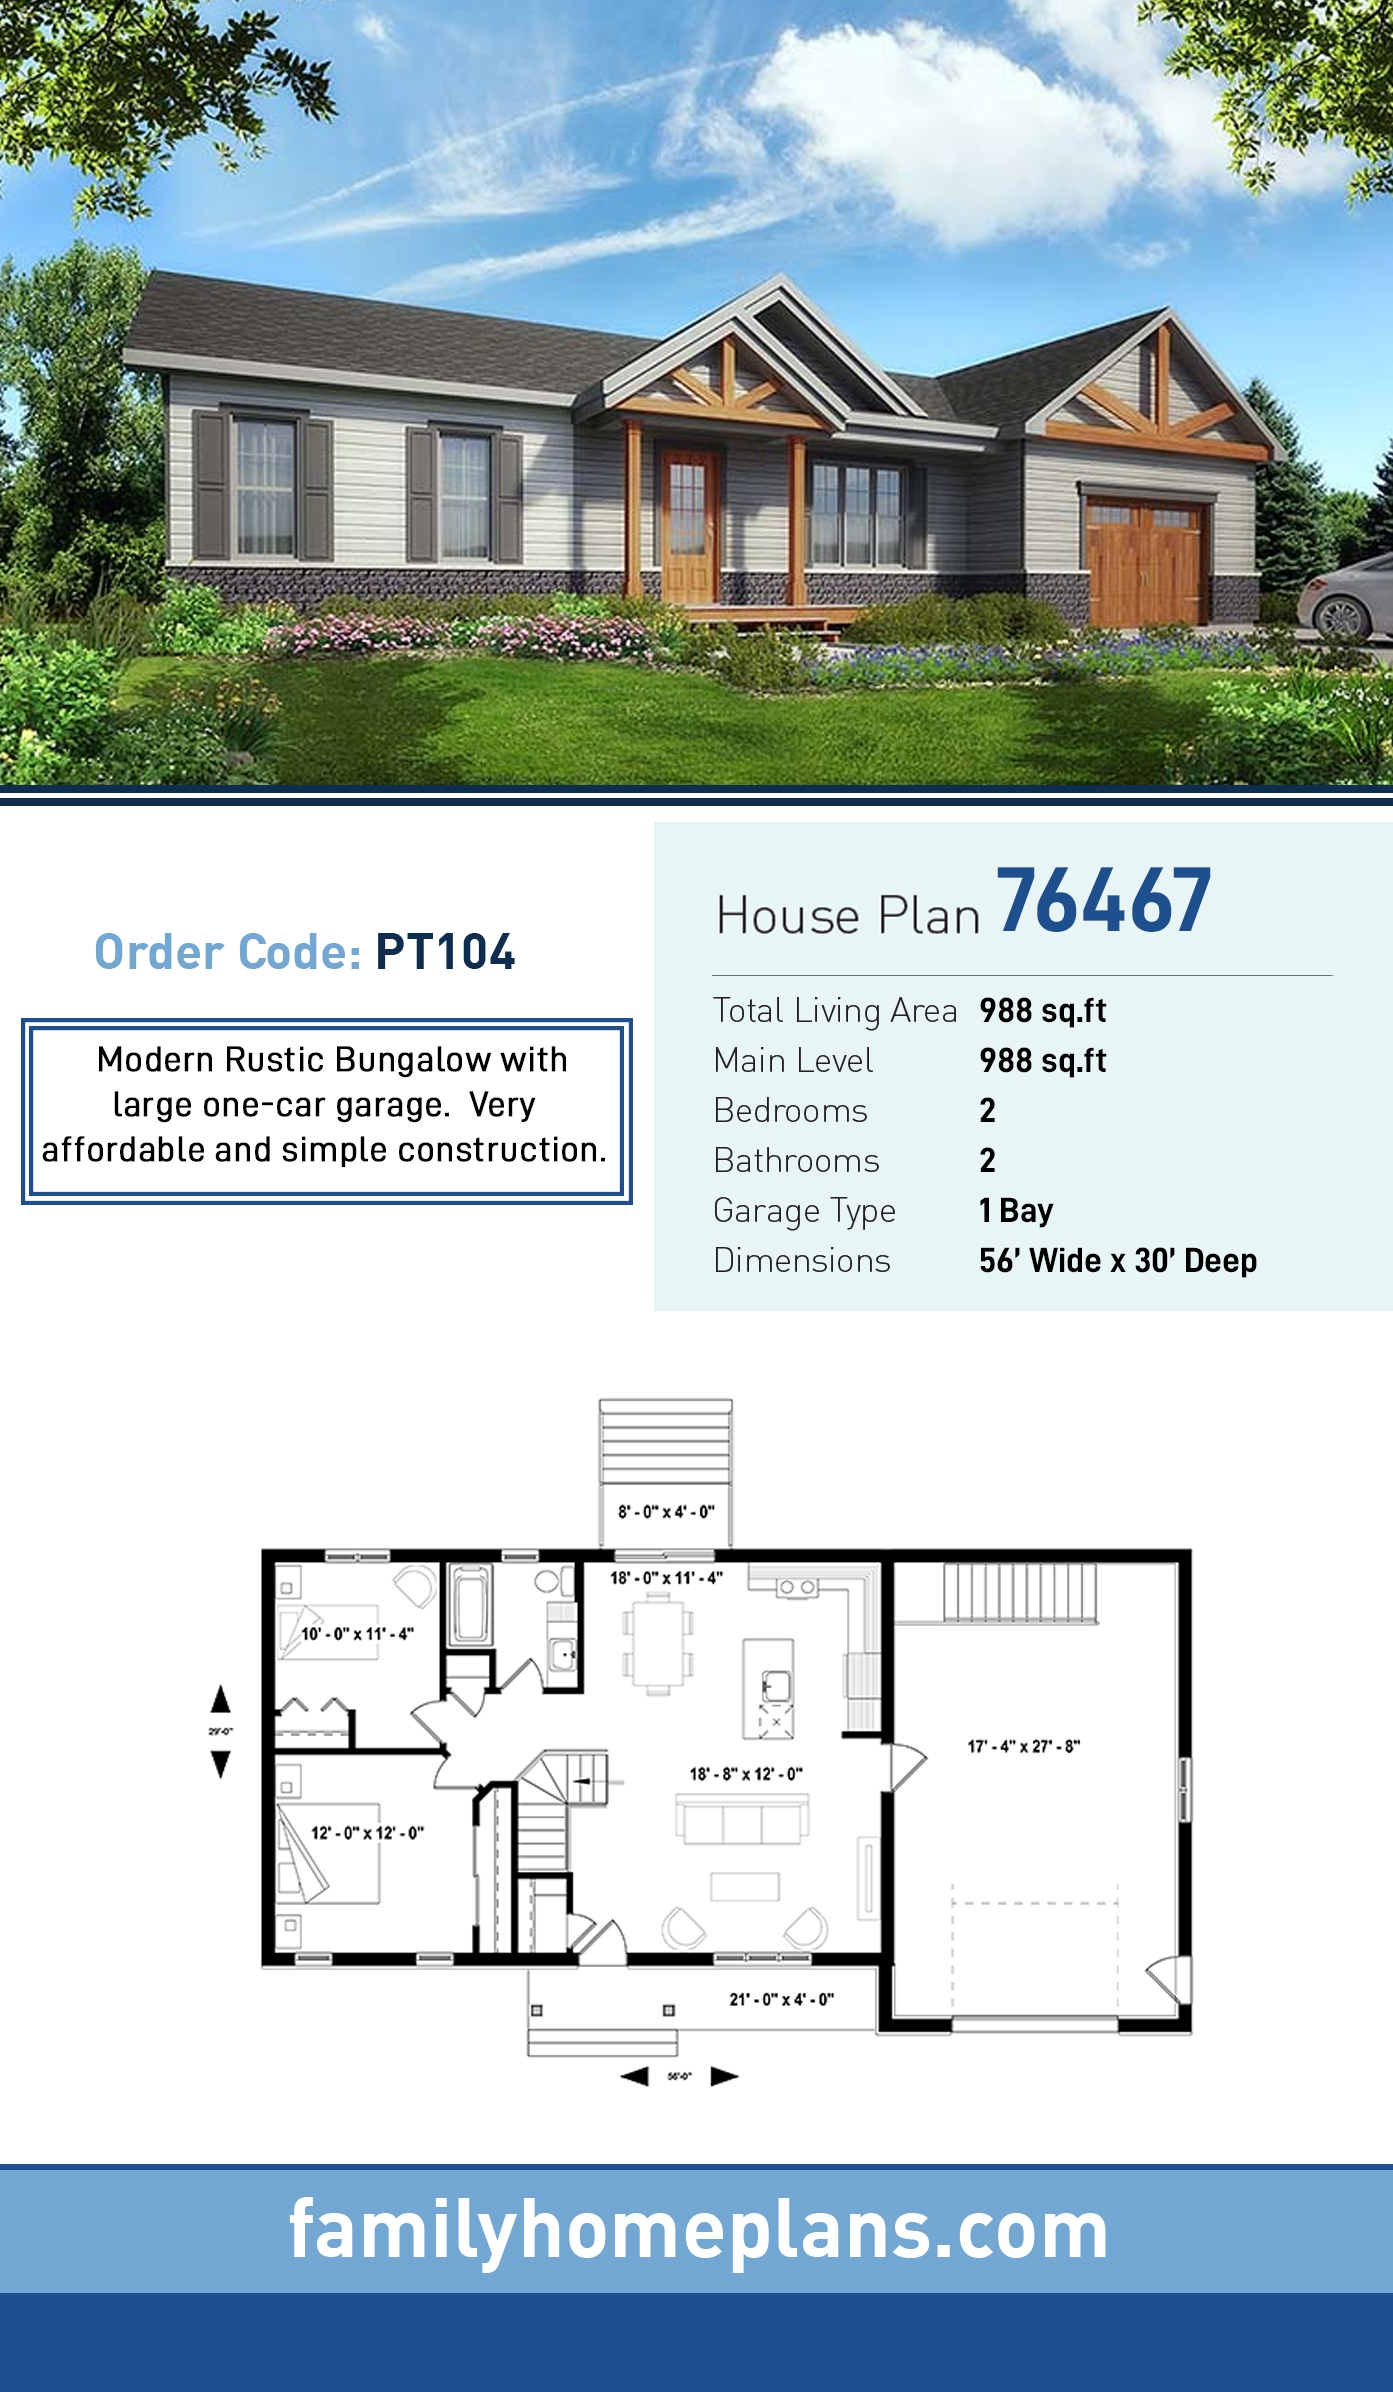 Bungalow , Craftsman , Ranch , Traditional House Plan 76467 with 2 Beds, 2 Baths, 1 Car Garage